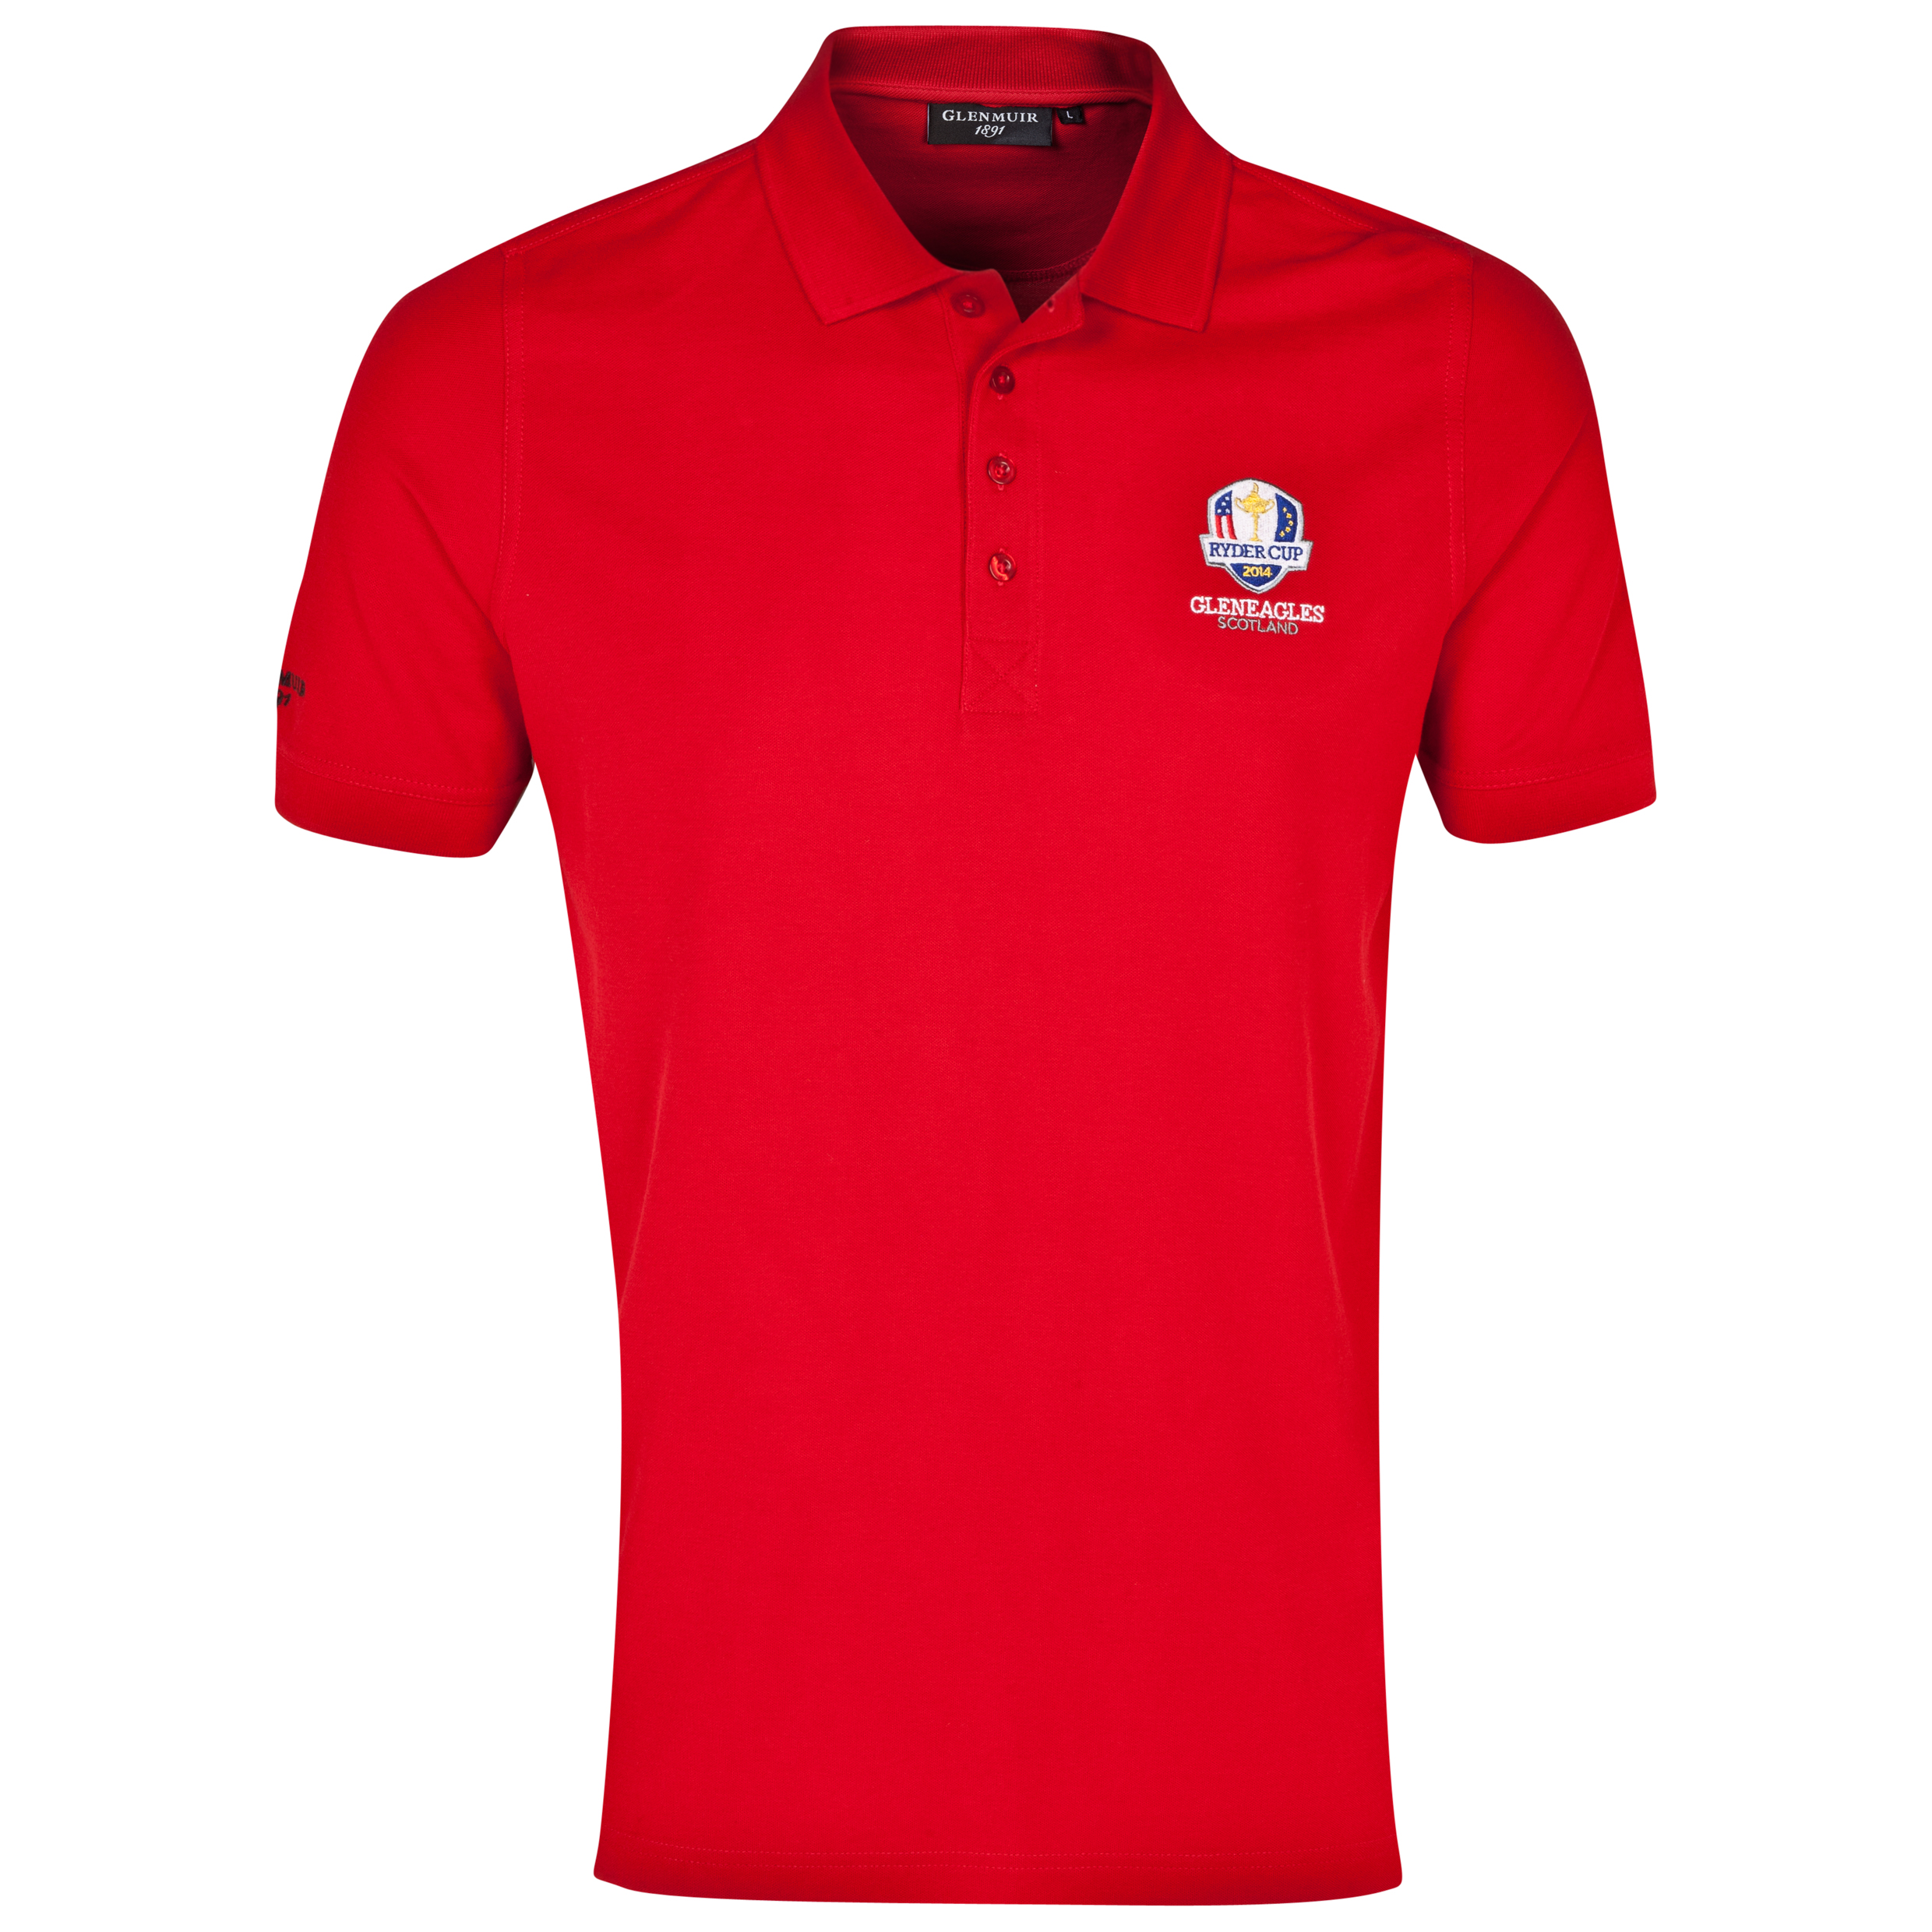 The 2014 Ryder Cup Glenmuir Kinloch Cotton Polo Red